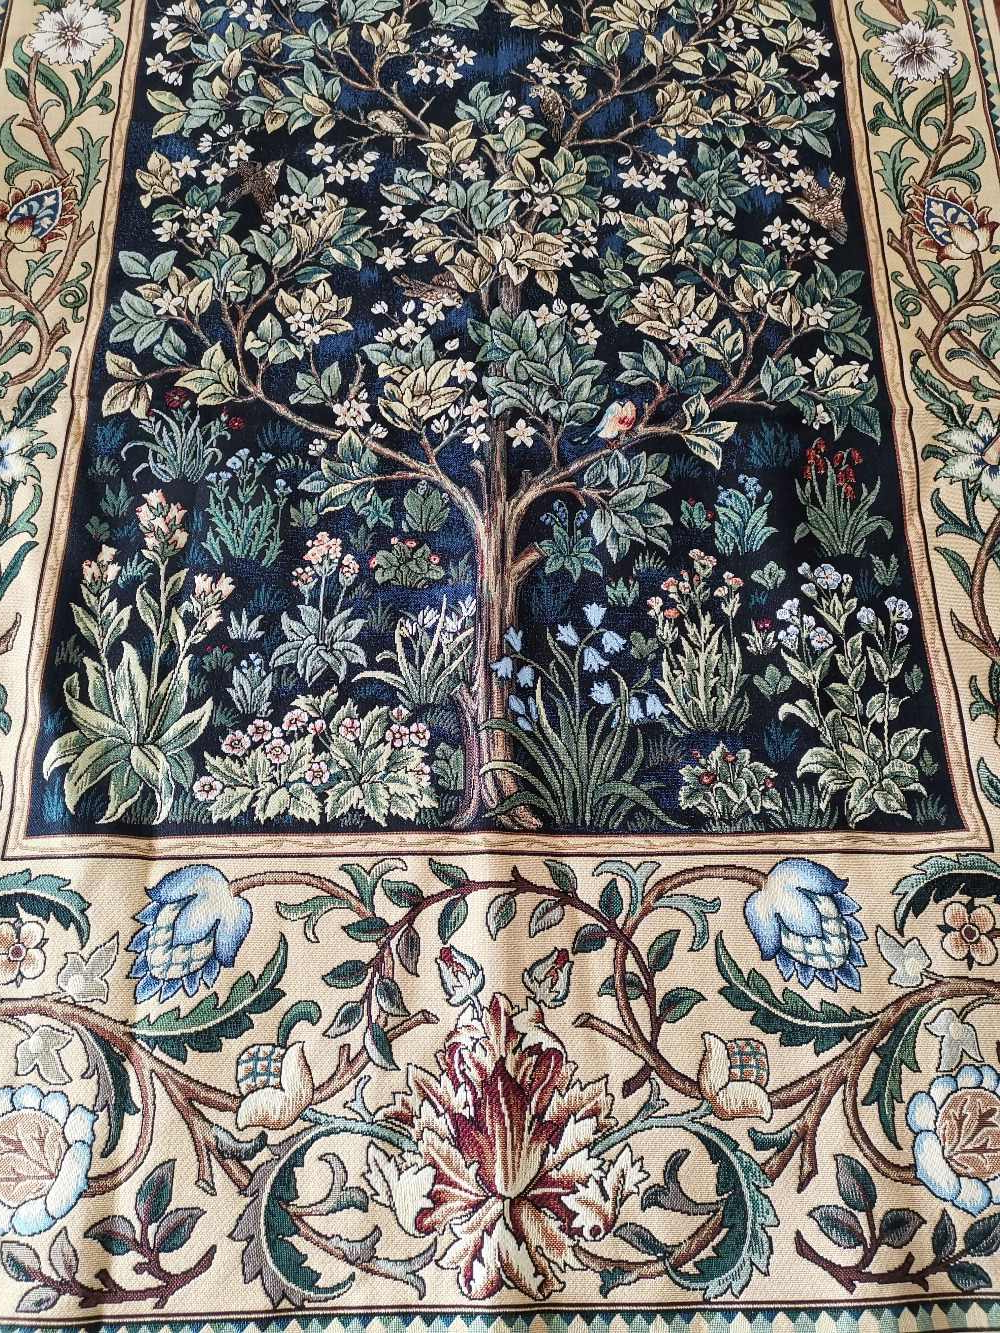 Blended Fabric Tree Of Life, William Morris Wall Hangings Pertaining To Most Recently Released William Morris Blue Tree Of Life 140*107cm Antique Textile Decorative Belgiu Wall Hanging Tapestry For Home Decorative Tapestry (View 10 of 20)